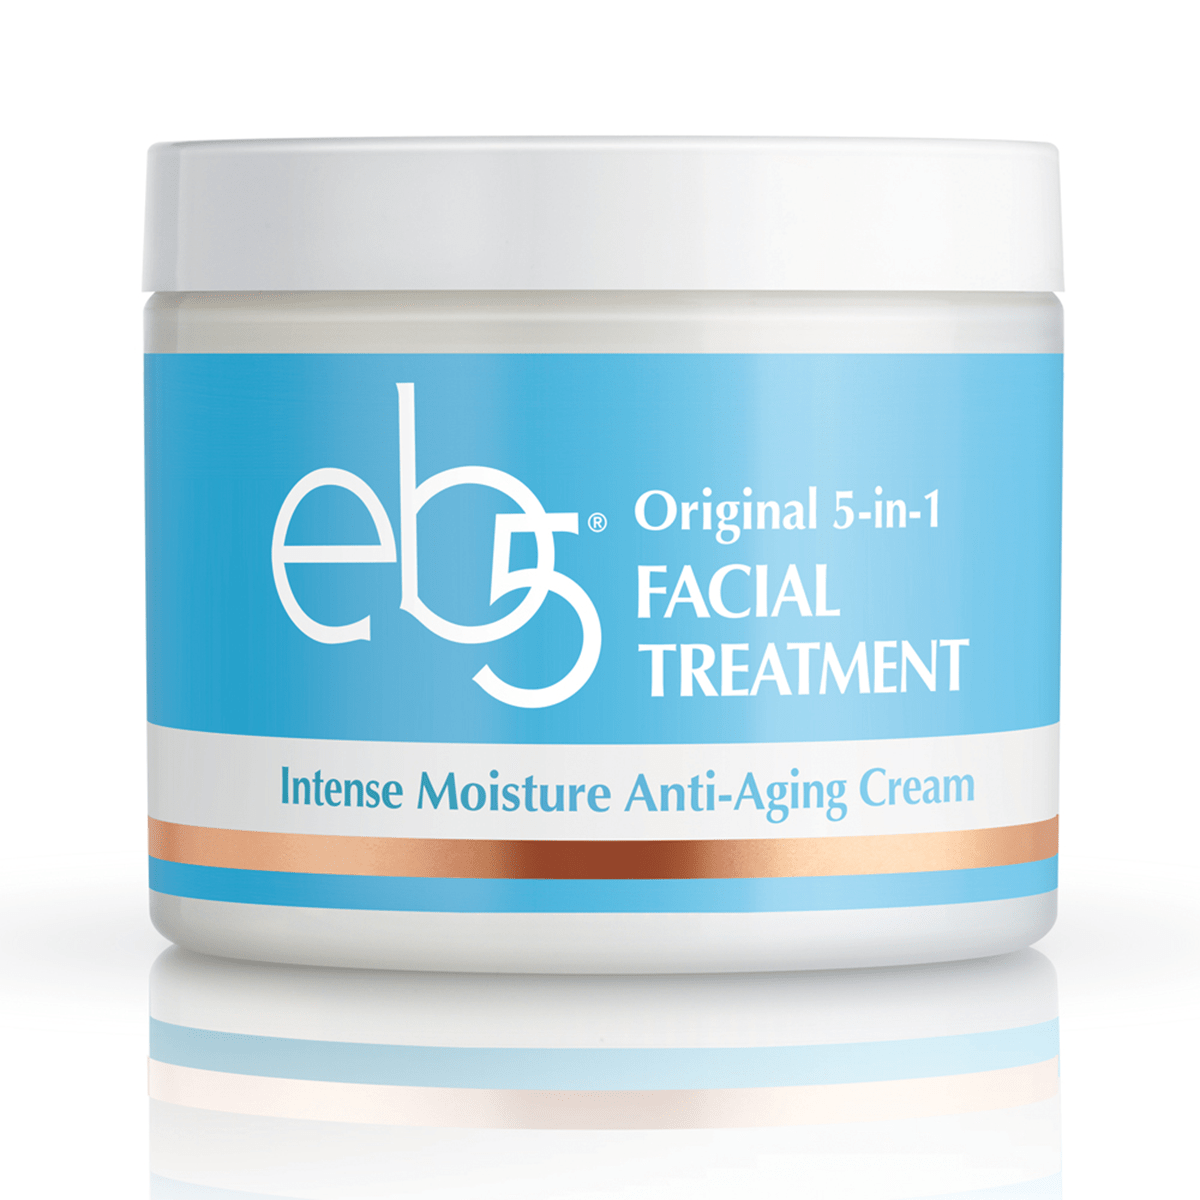 eb5 Unscented Original 5 in 1 Intense Moisture Anti Aging Cream - 4oz